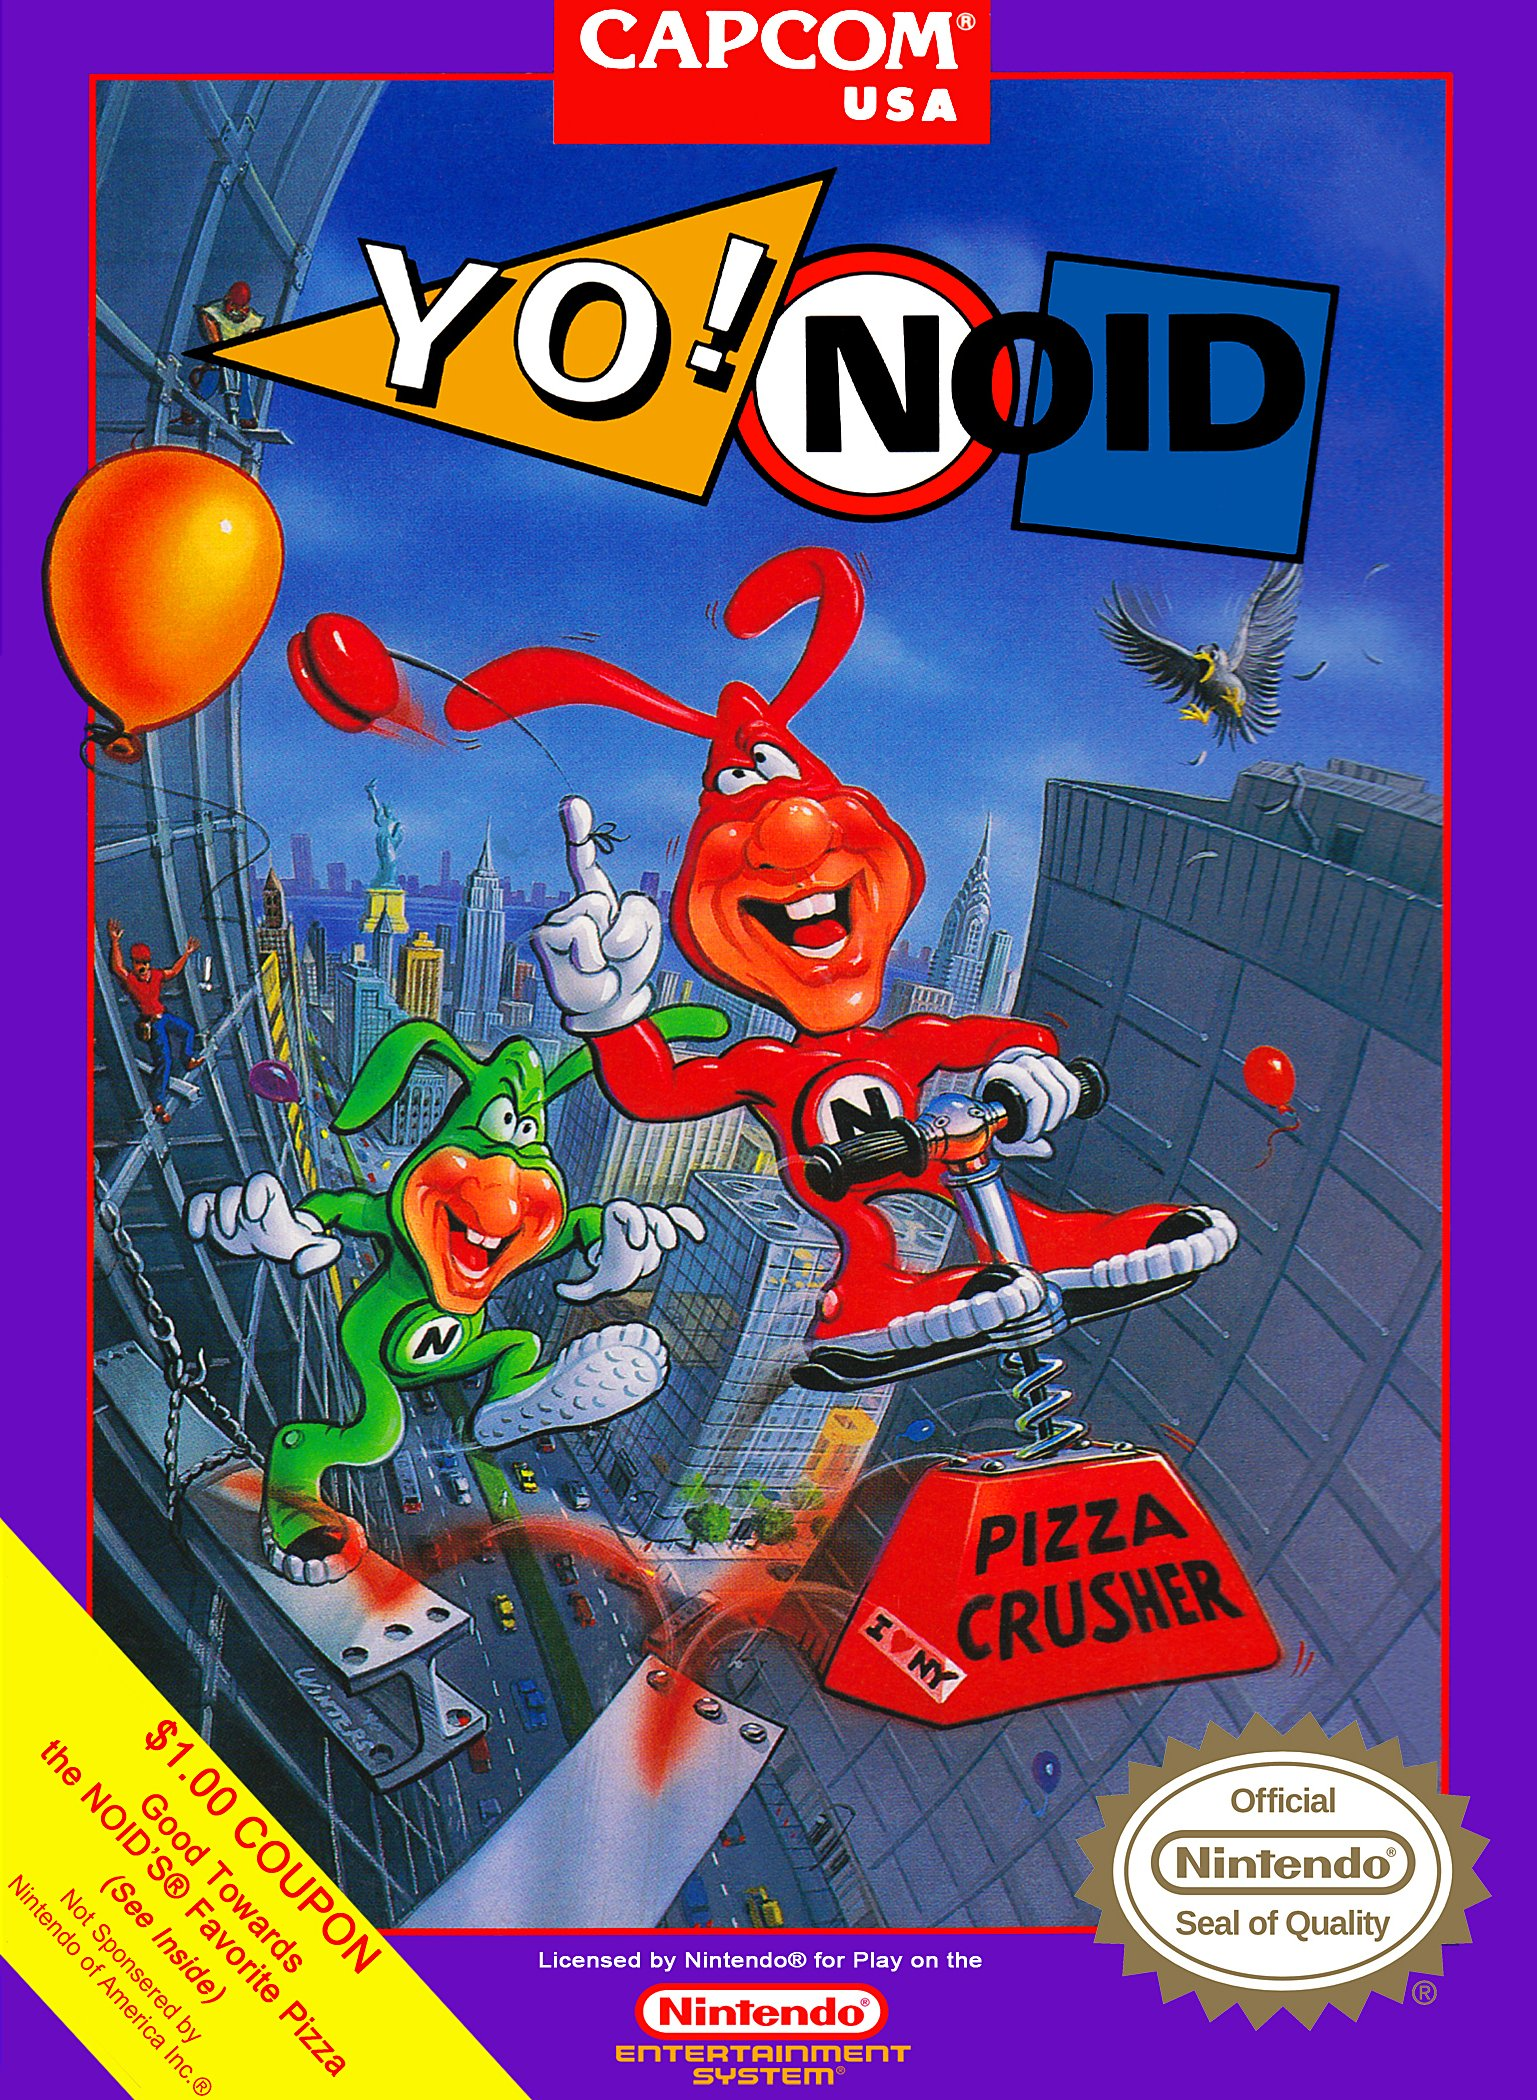 Amazon.com: Yo! Noid: Video Games